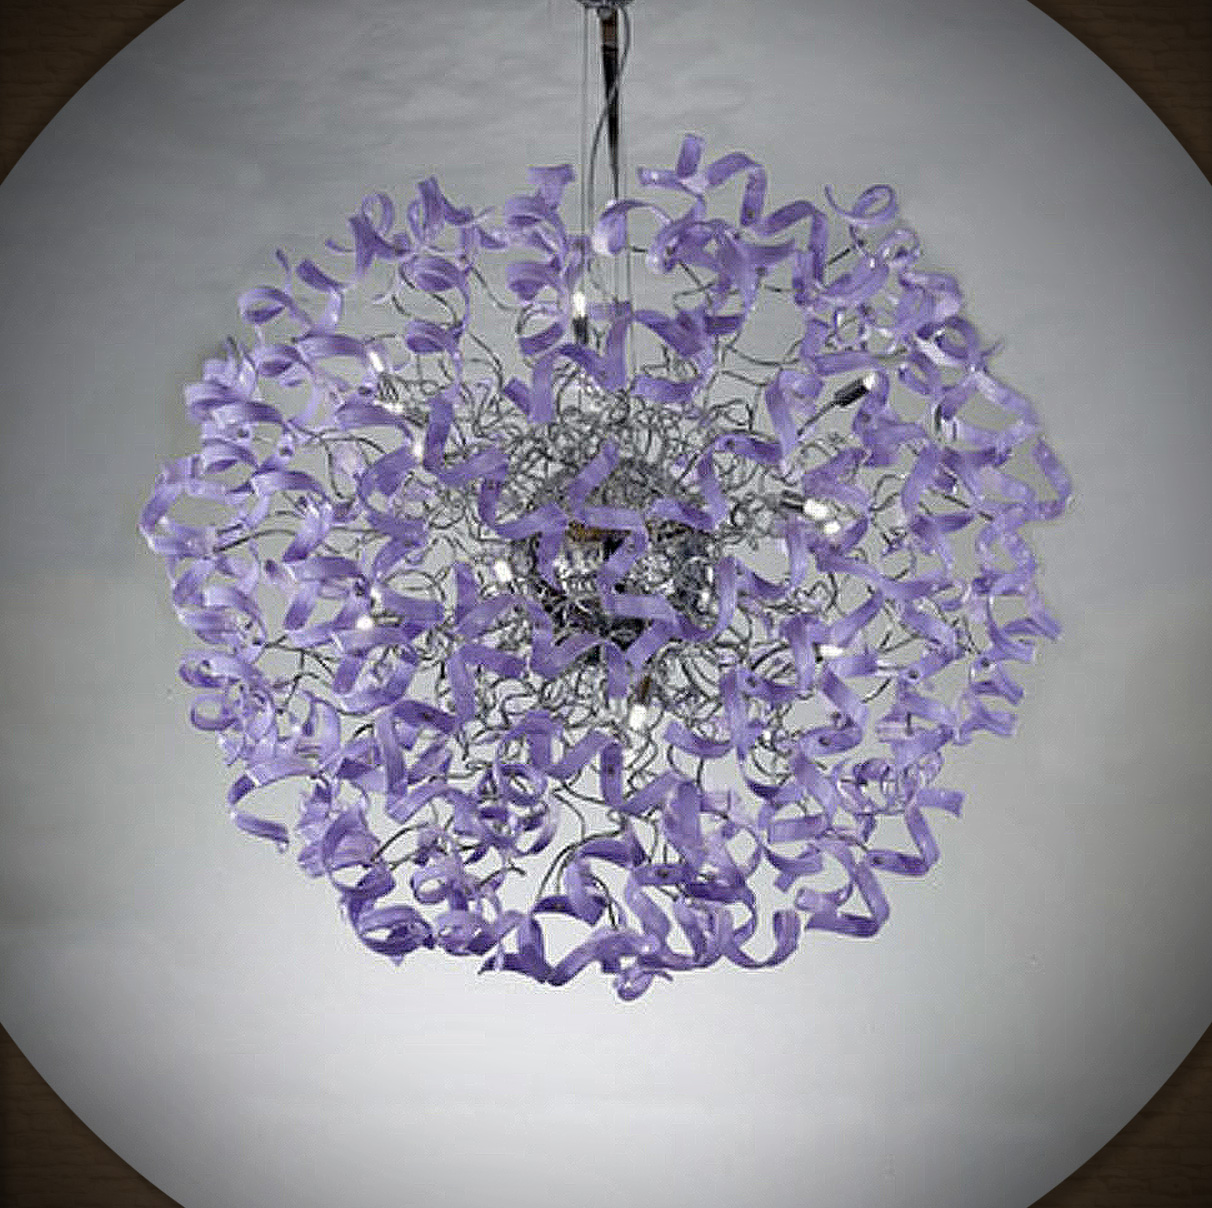 this chandelier belongs 2 chaka kahn. she is my friend.